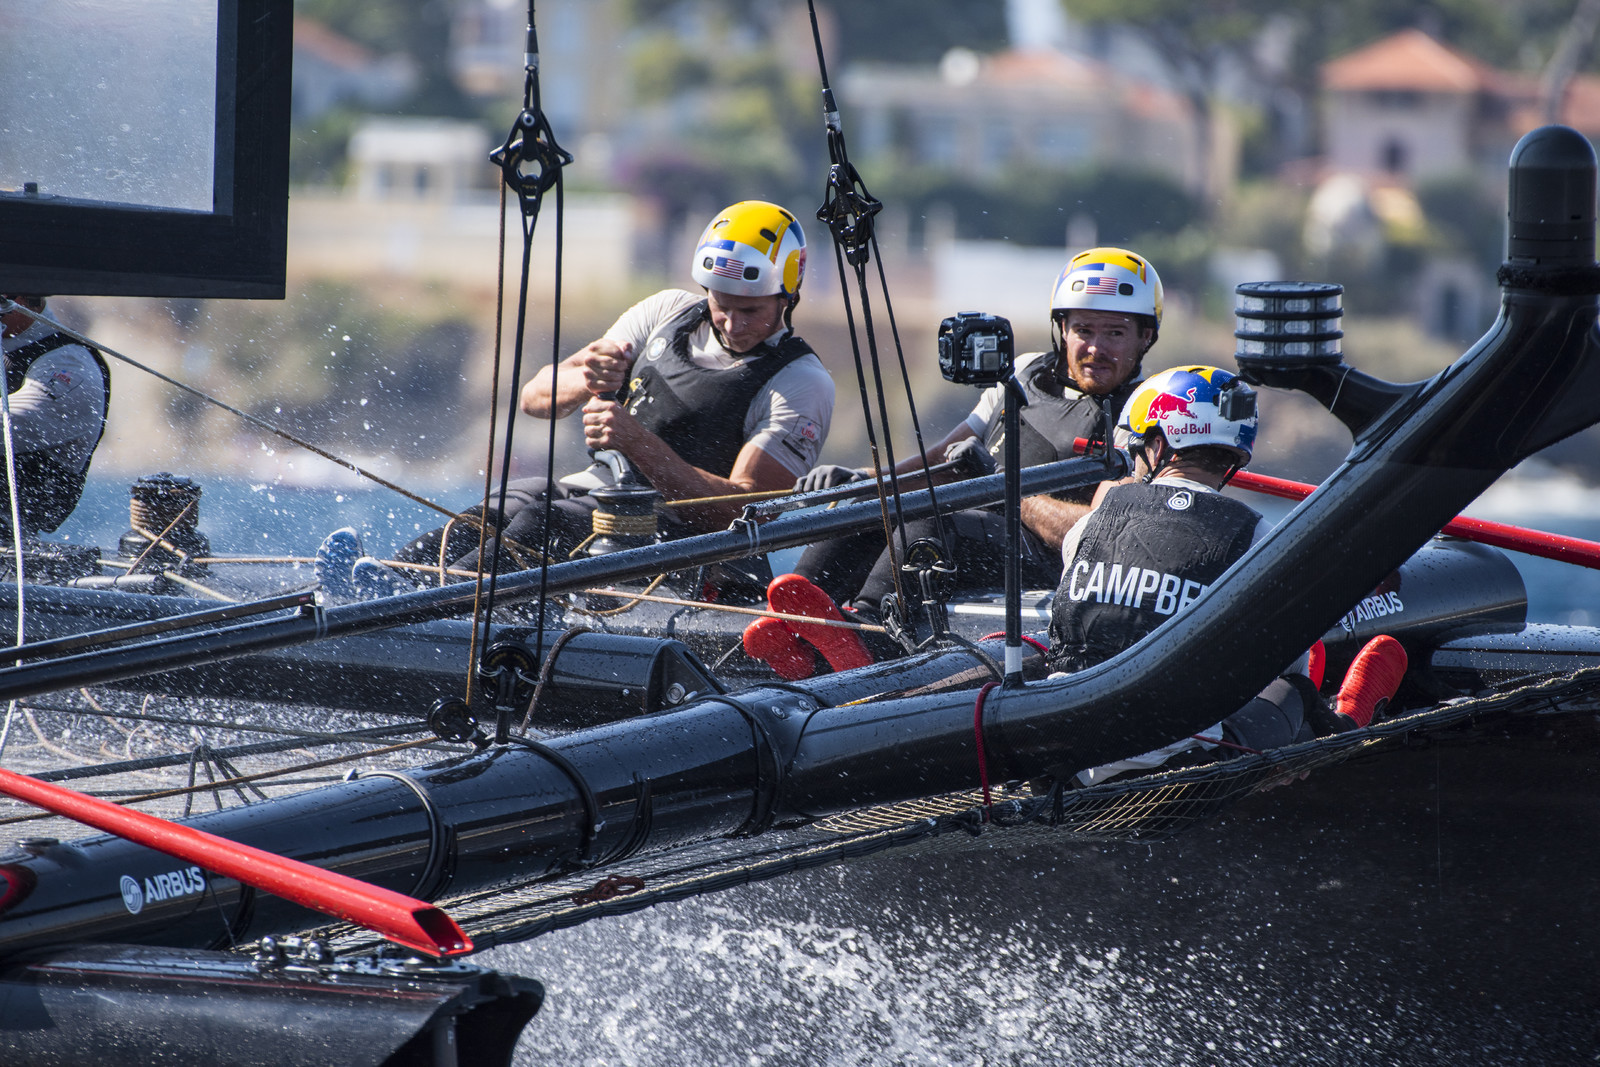 Media Day at Louis Vuitton America's Cup World Series Chicago